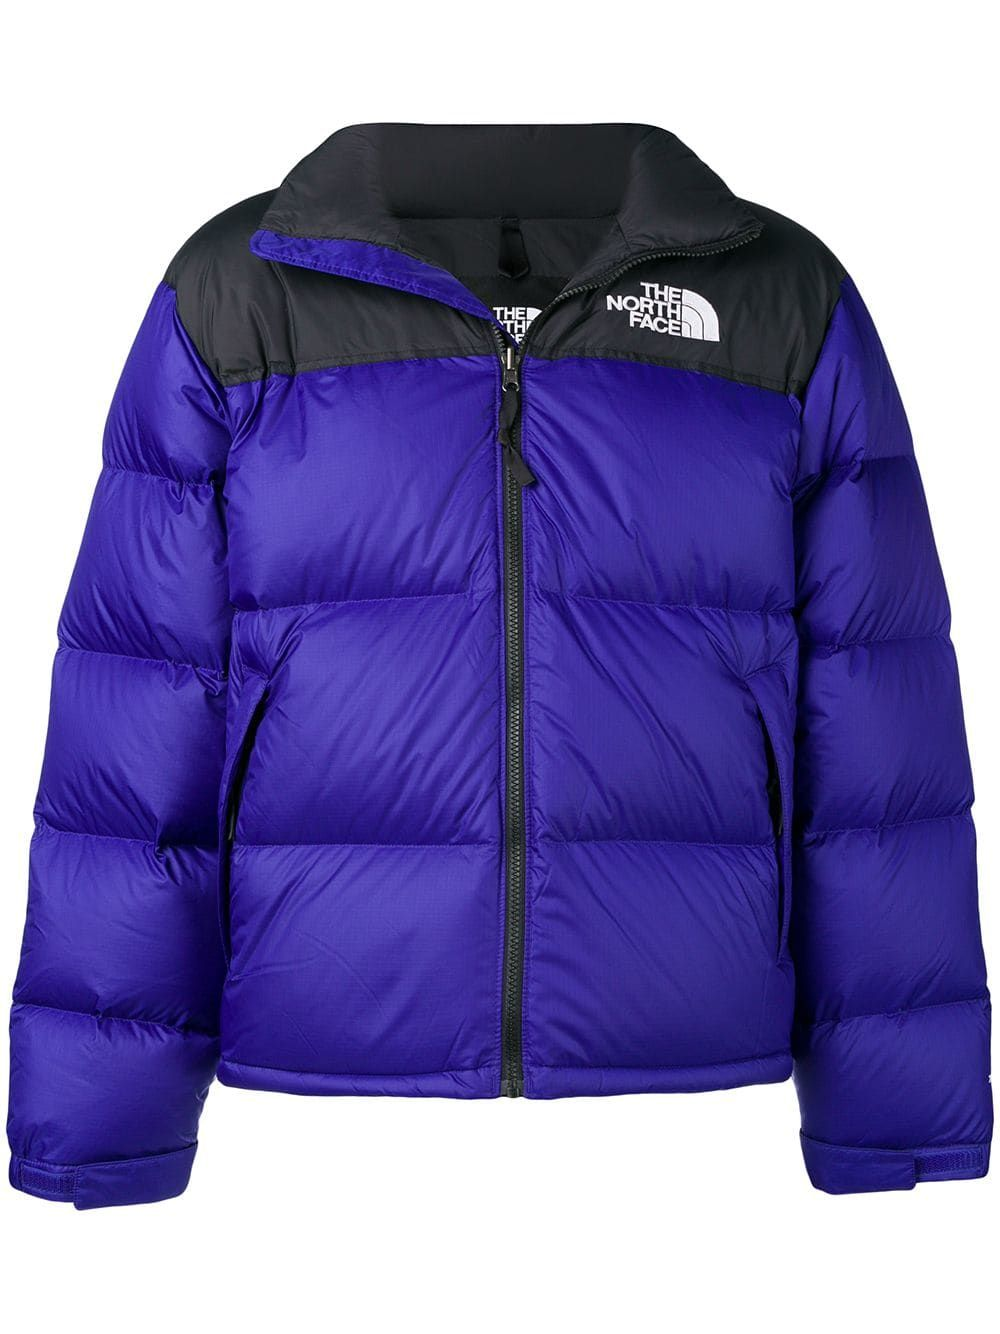 11aab486b THE NORTH FACE THE NORTH FACE TWO-TONE PUFFER JACKET - BLUE ...